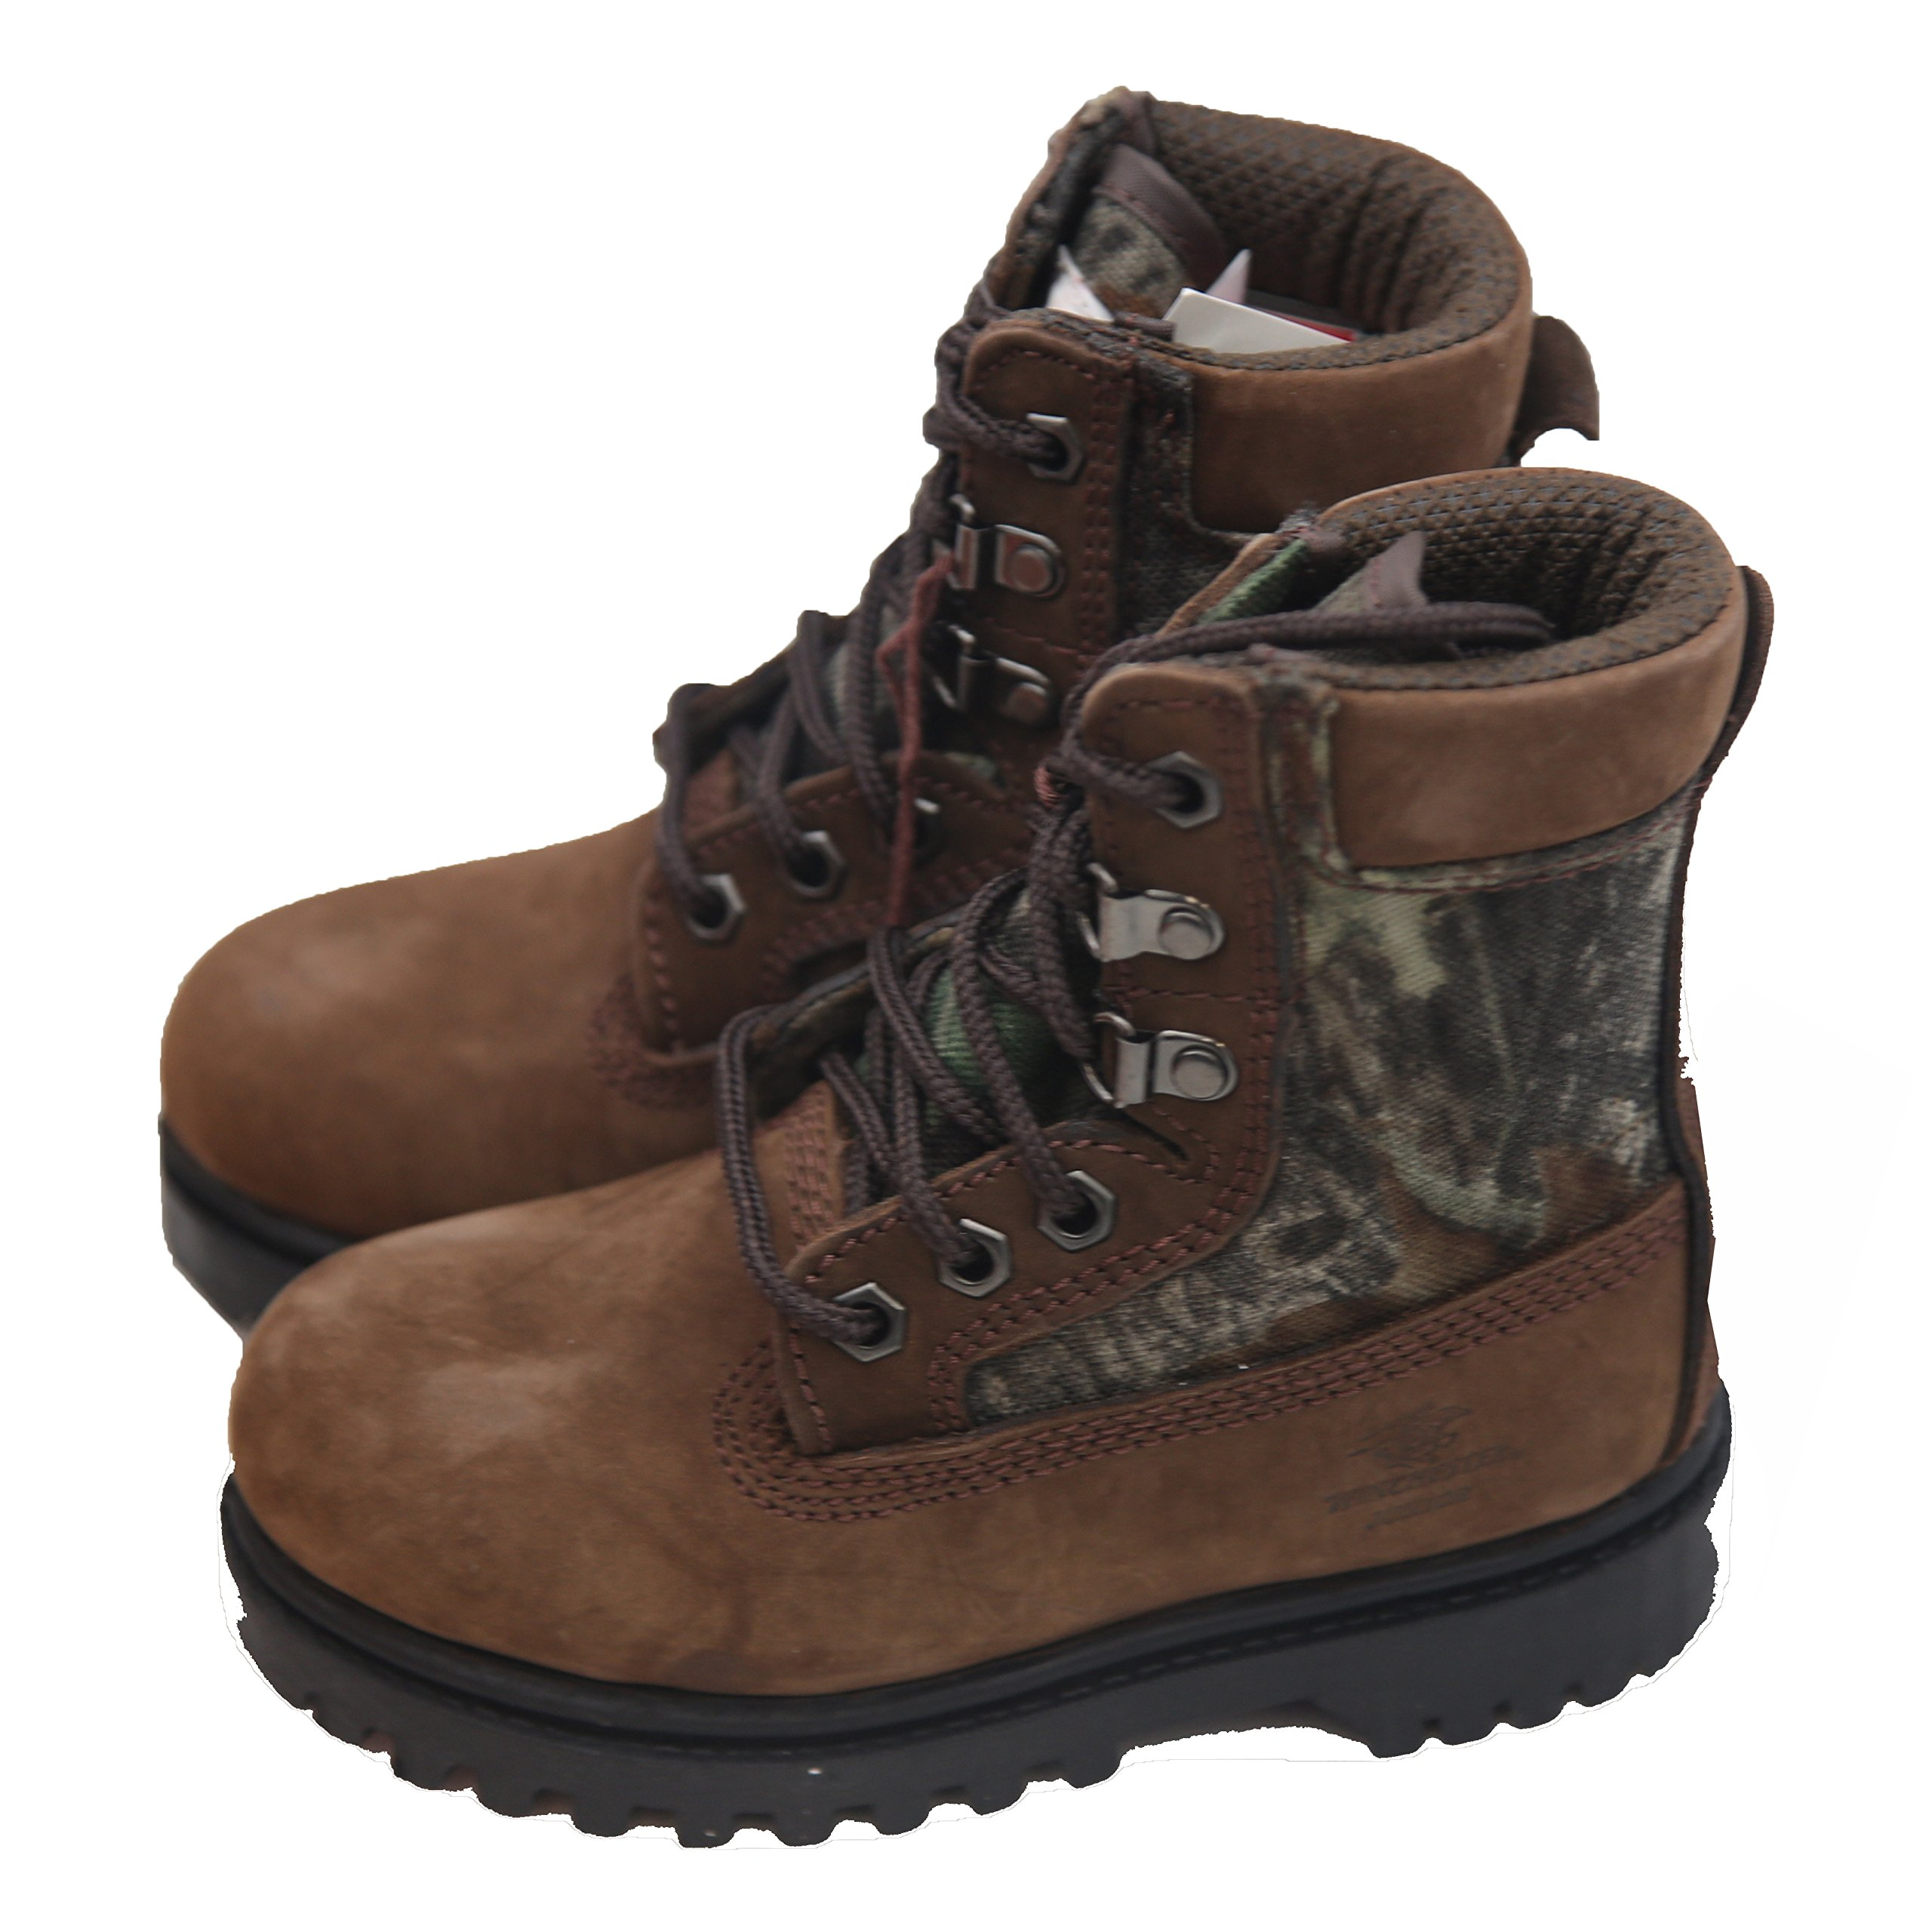 Pro Line Winchester Youth WIN1009BY 400GM Shell Hunting Boots, 13 Camo US